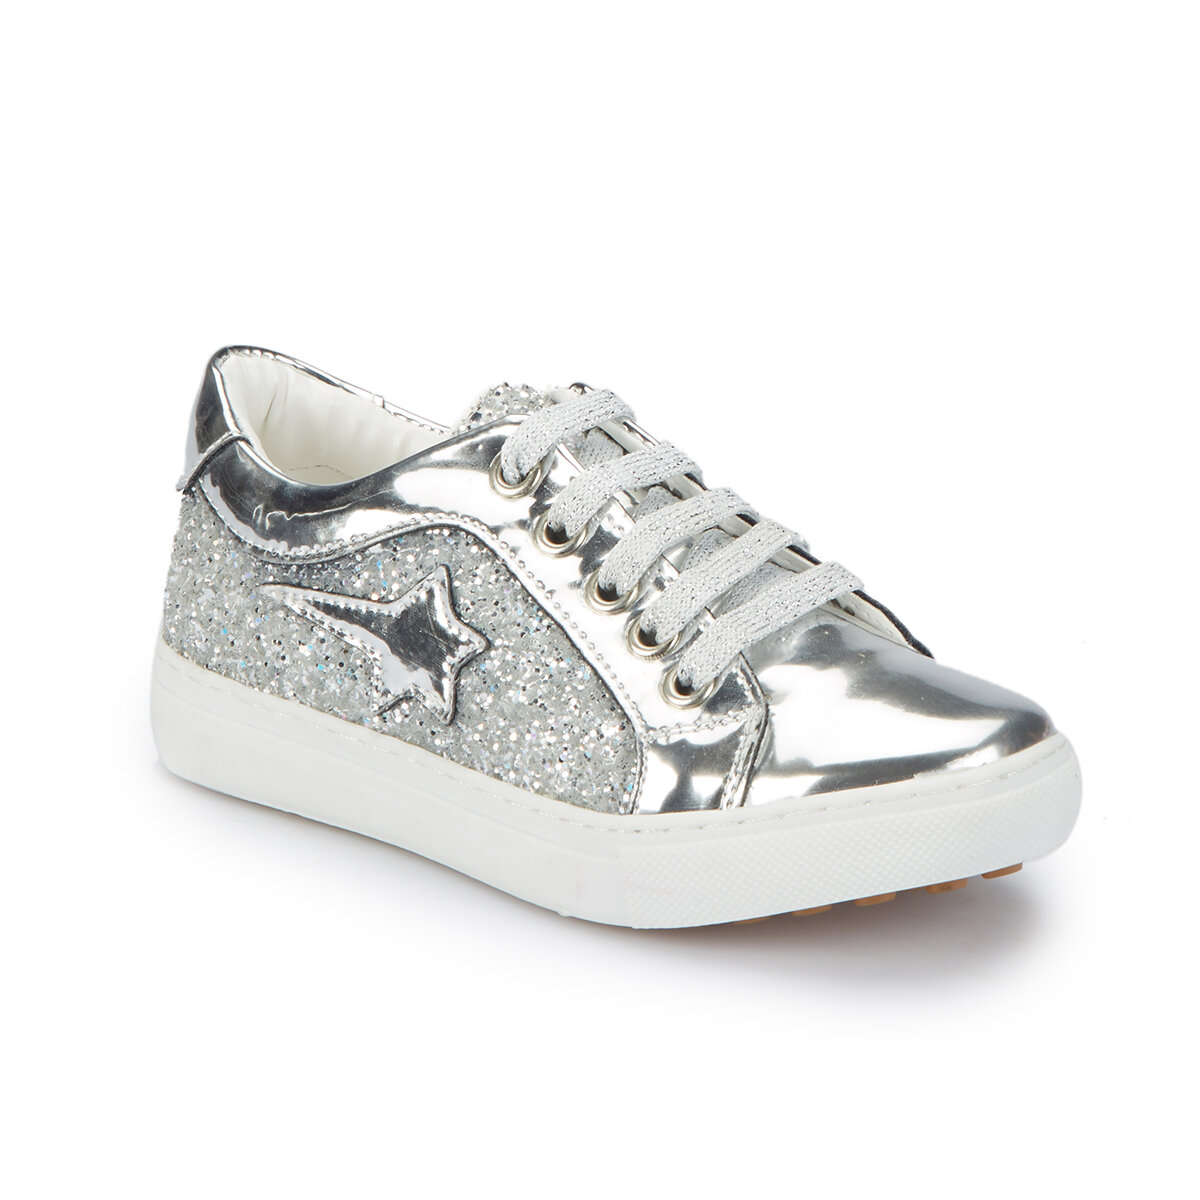 FLO MELLOV-1 Silver Female Child Sneaker Shoes PINKSTEP